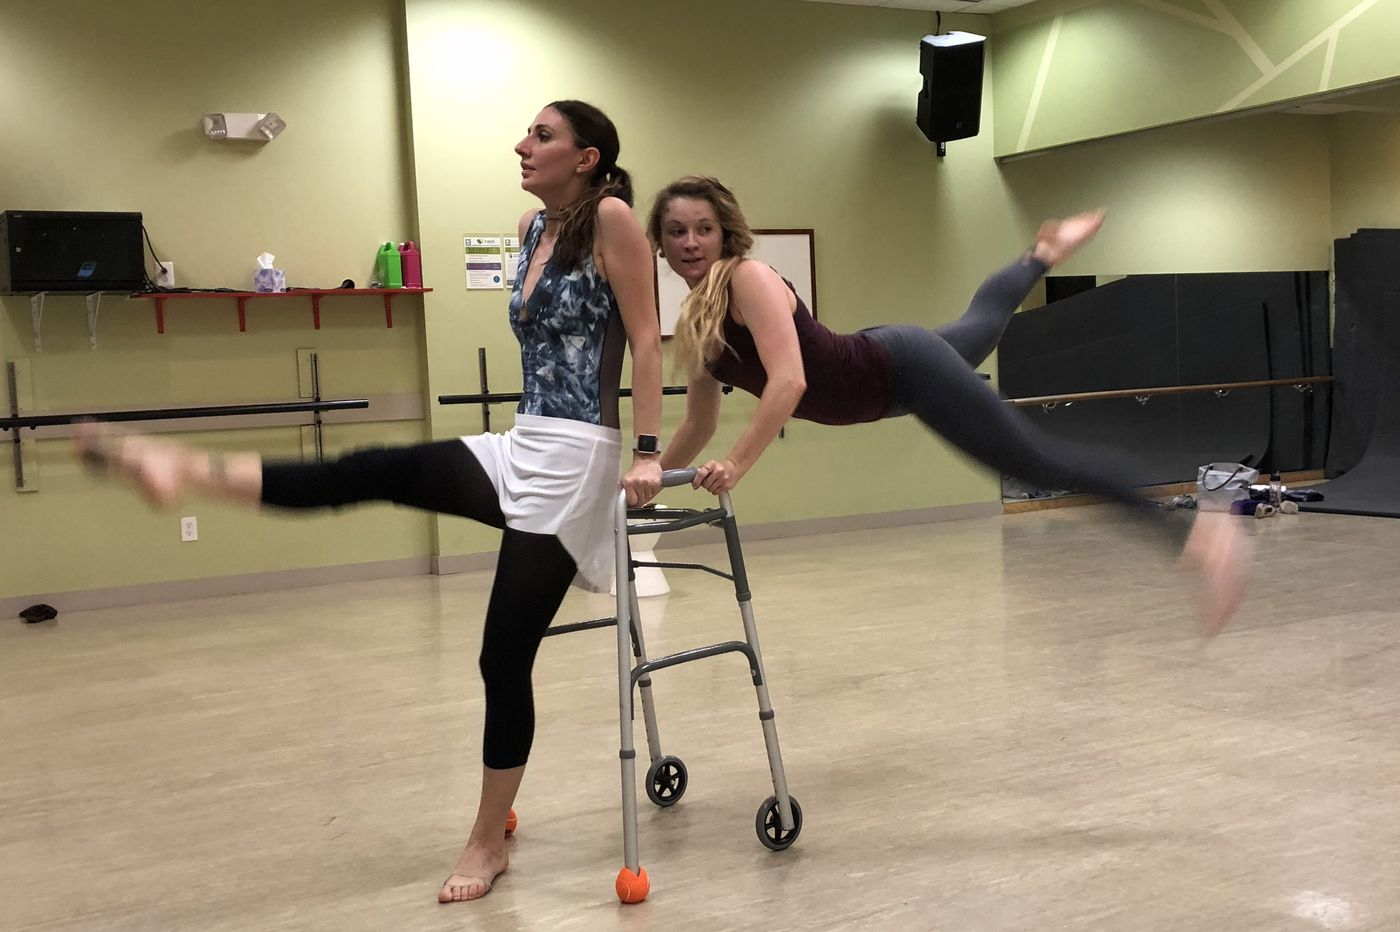 A stricken dancer and the walker she uses to create ballet | Stu Bykofsky